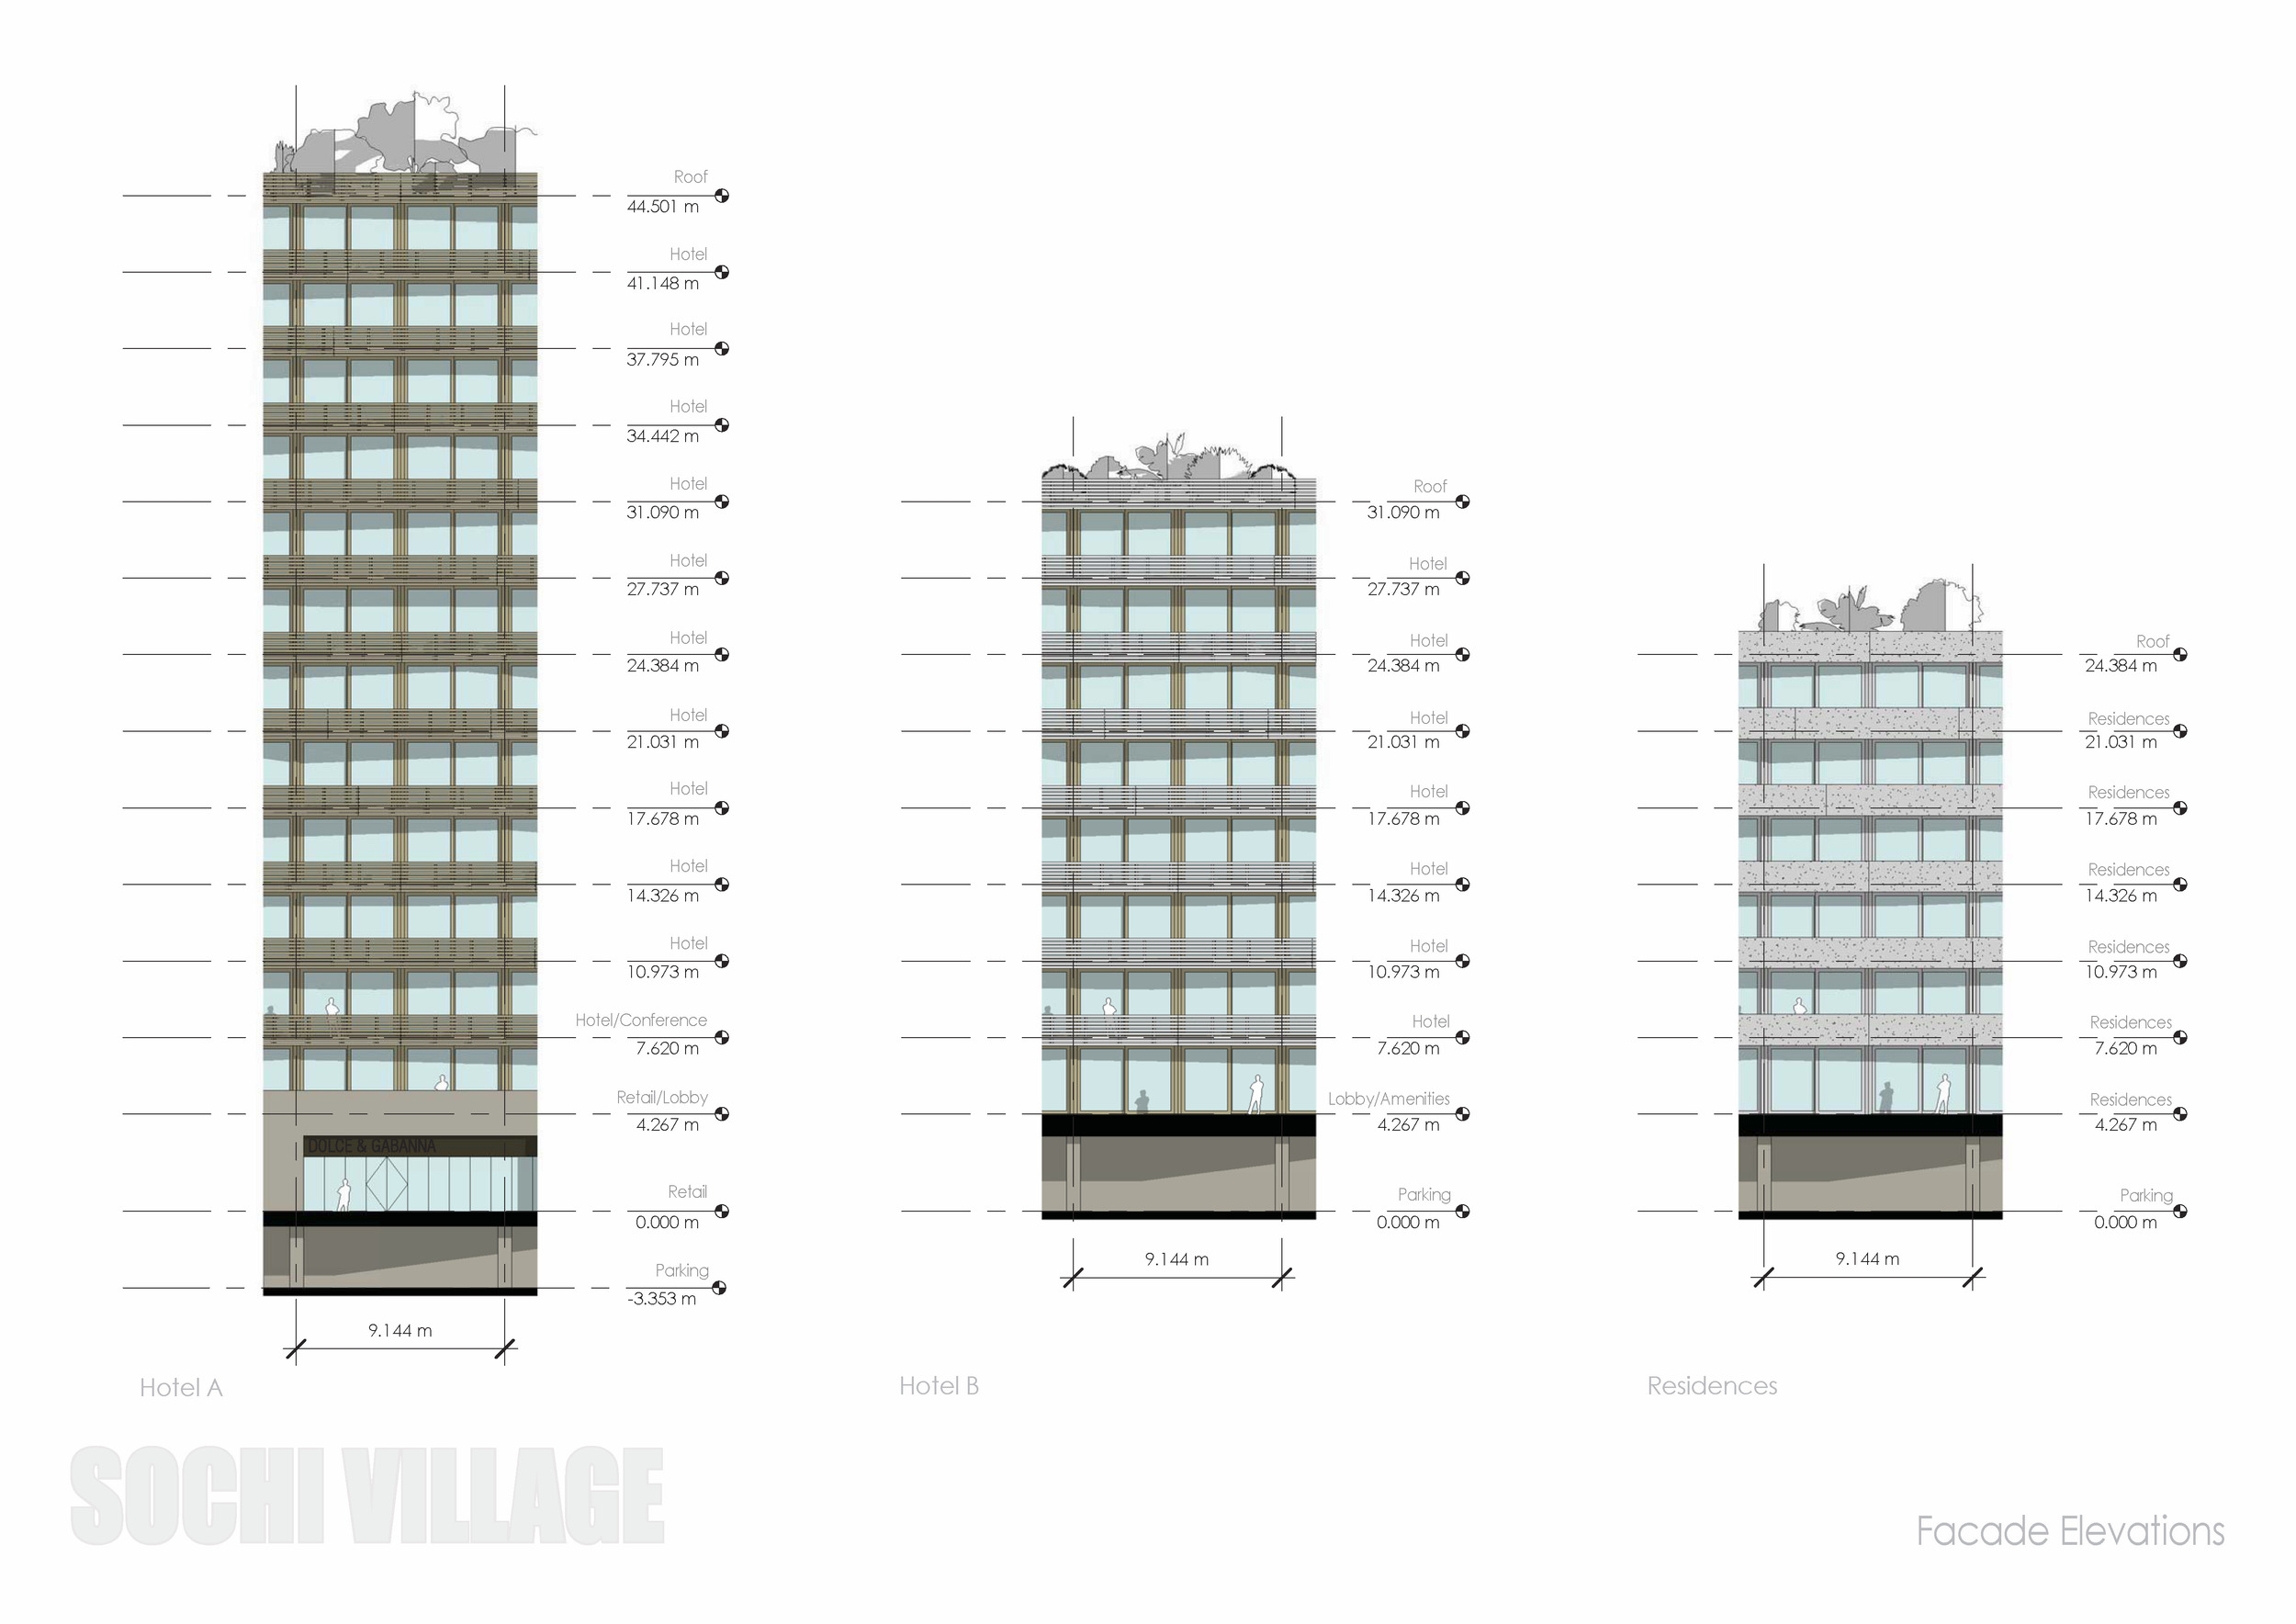 Sochi Olympic Village Facade Elevations